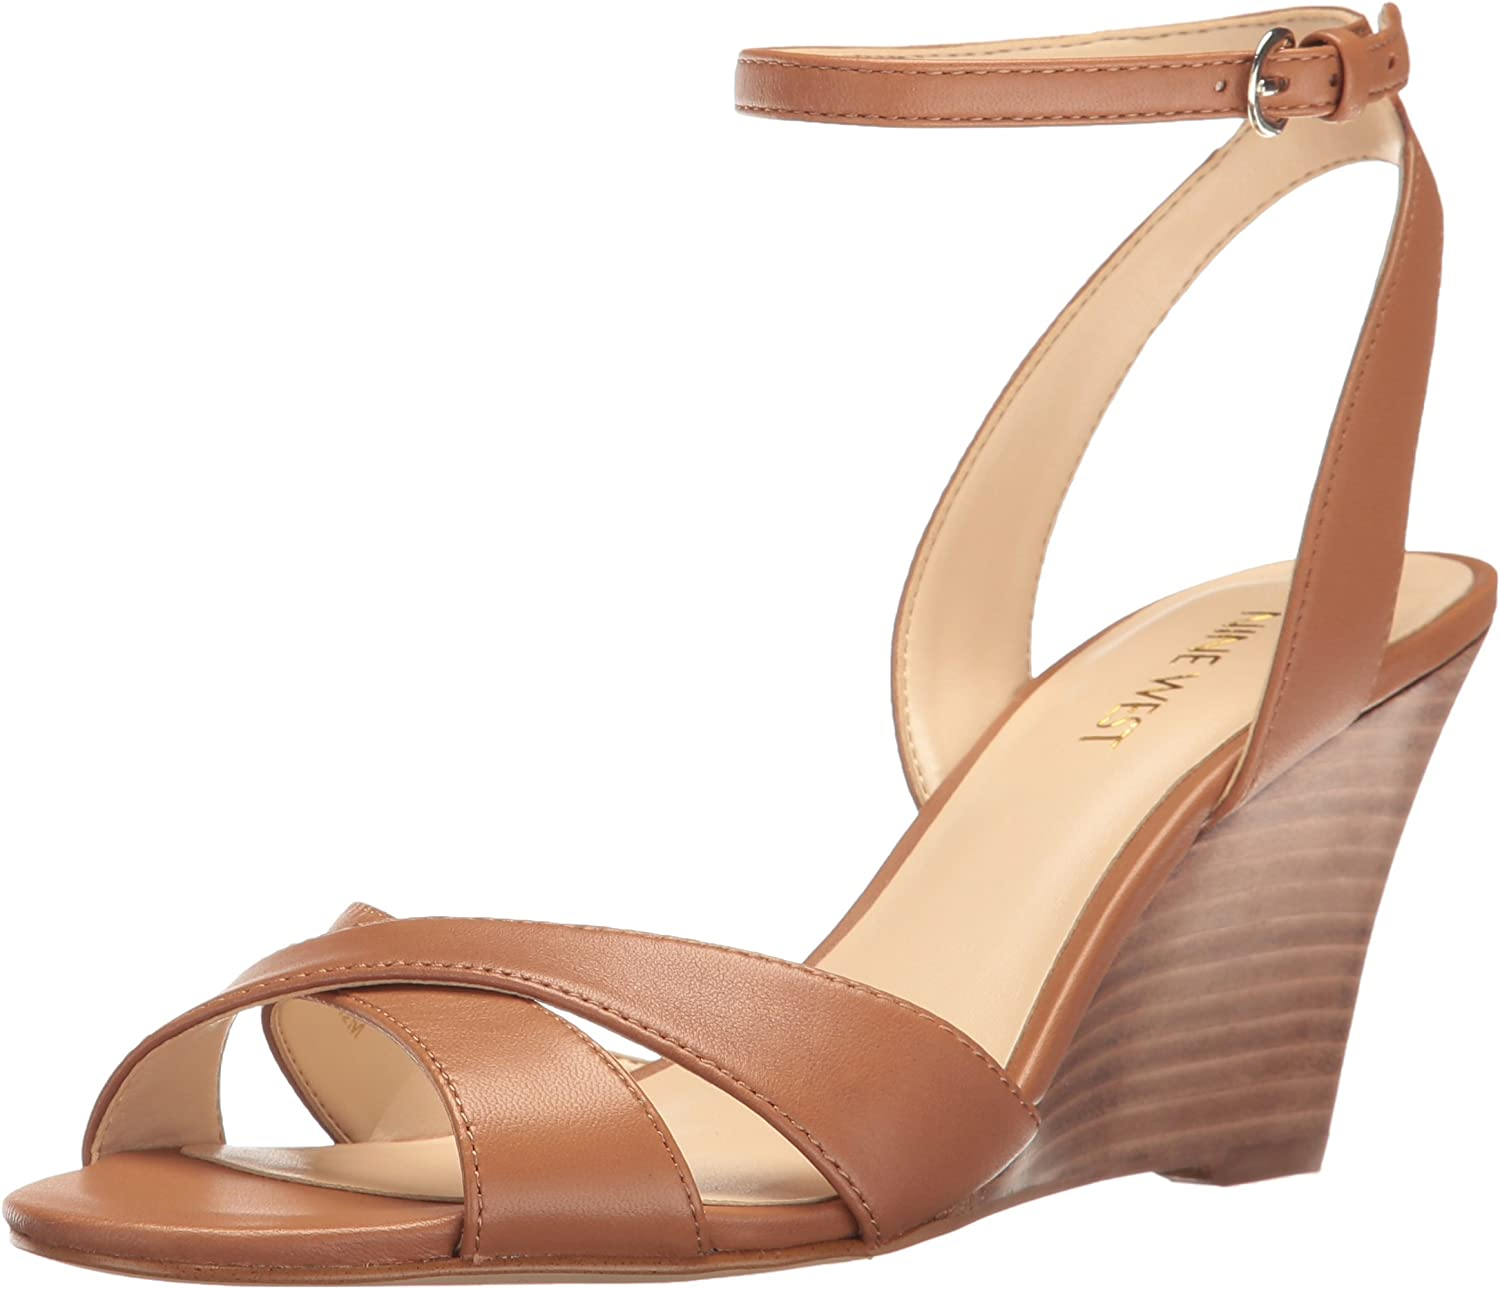 Nine West Womens Kami Leather Wedge Sandal